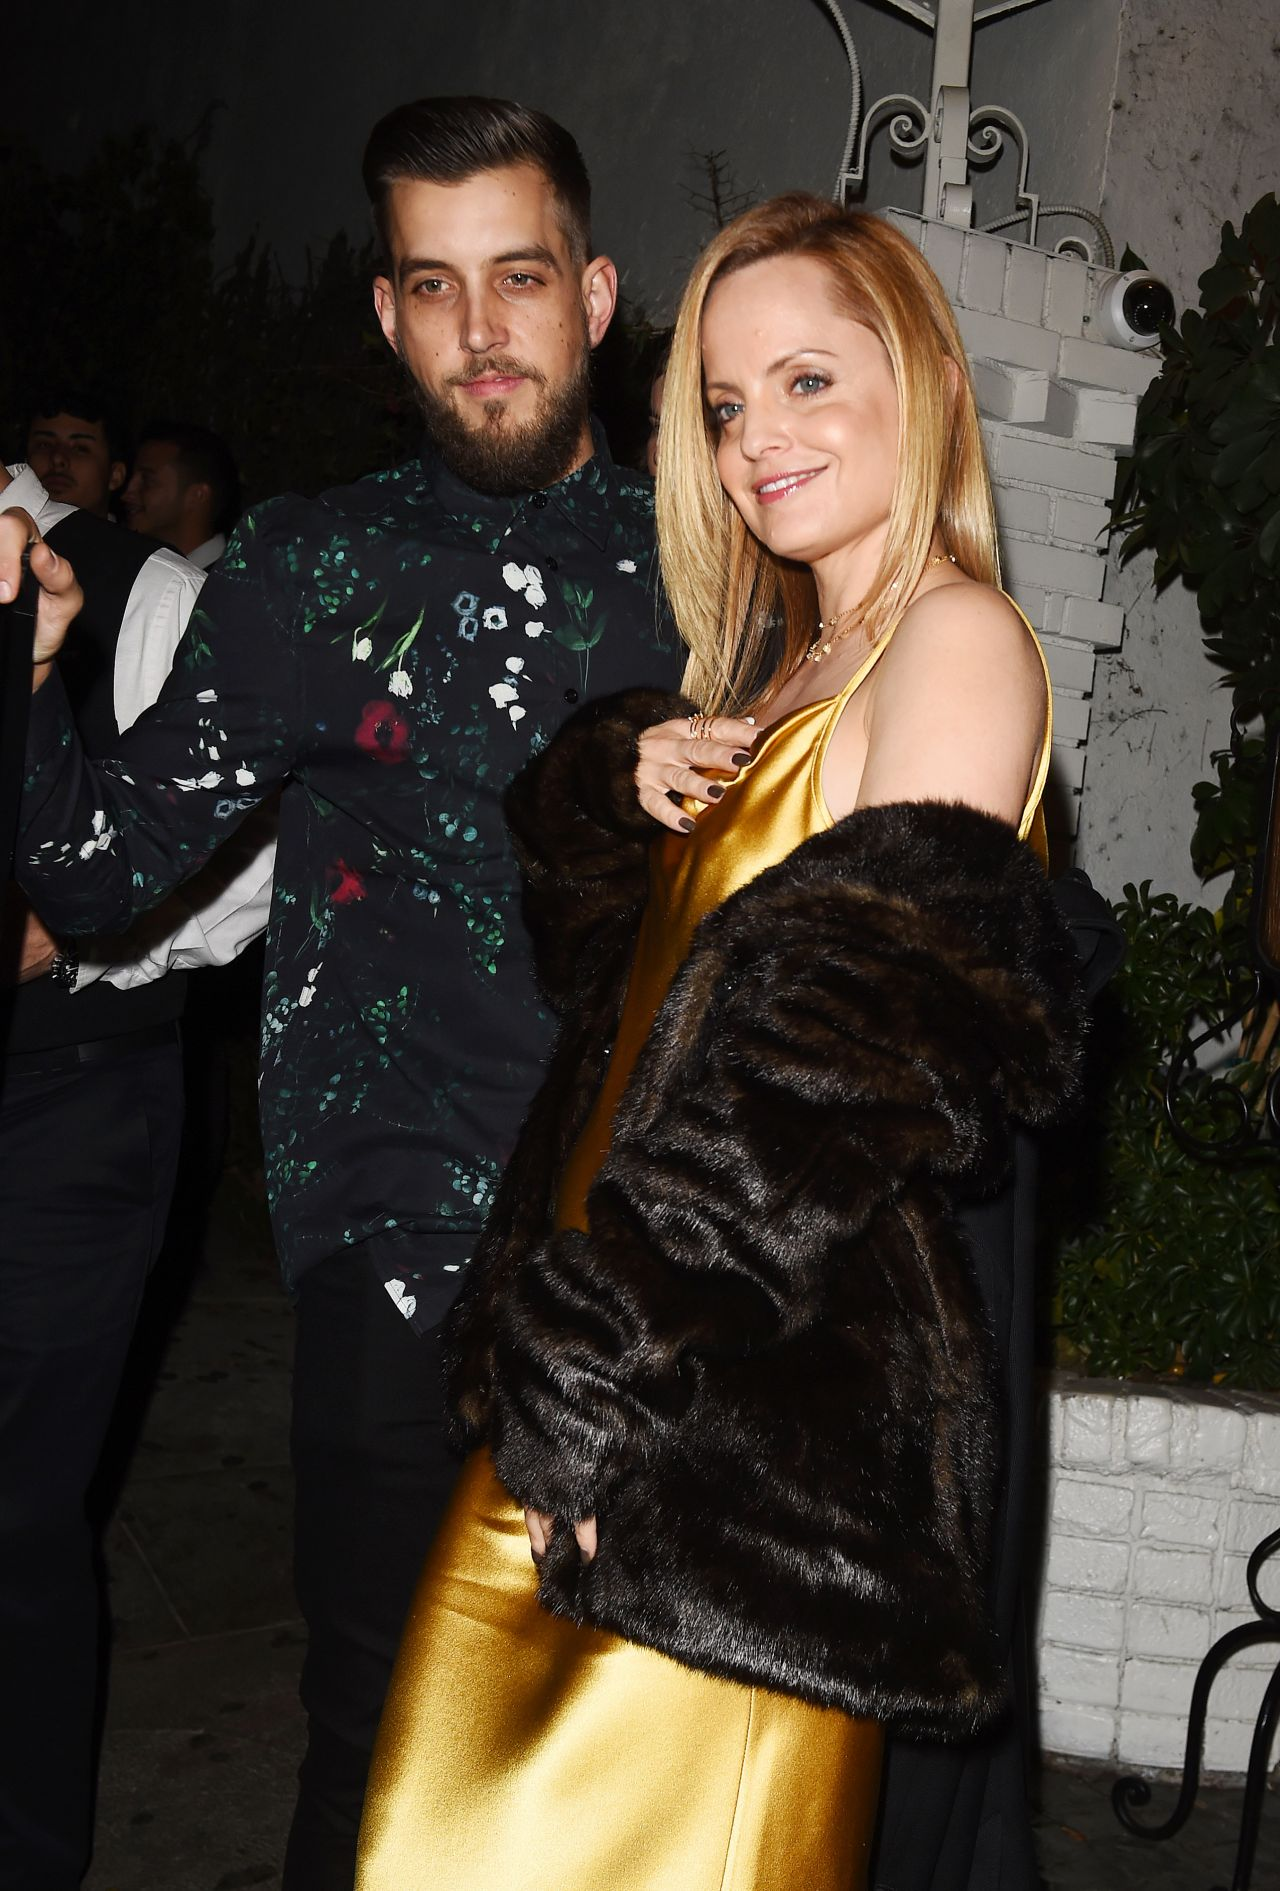 http://celebmafia.com/wp-content/uploads/2018/01/mena-suvari-w-magazine-celebrates-its-best-performances-portfolio-and-the-golden-globes-in-la-6.jpg